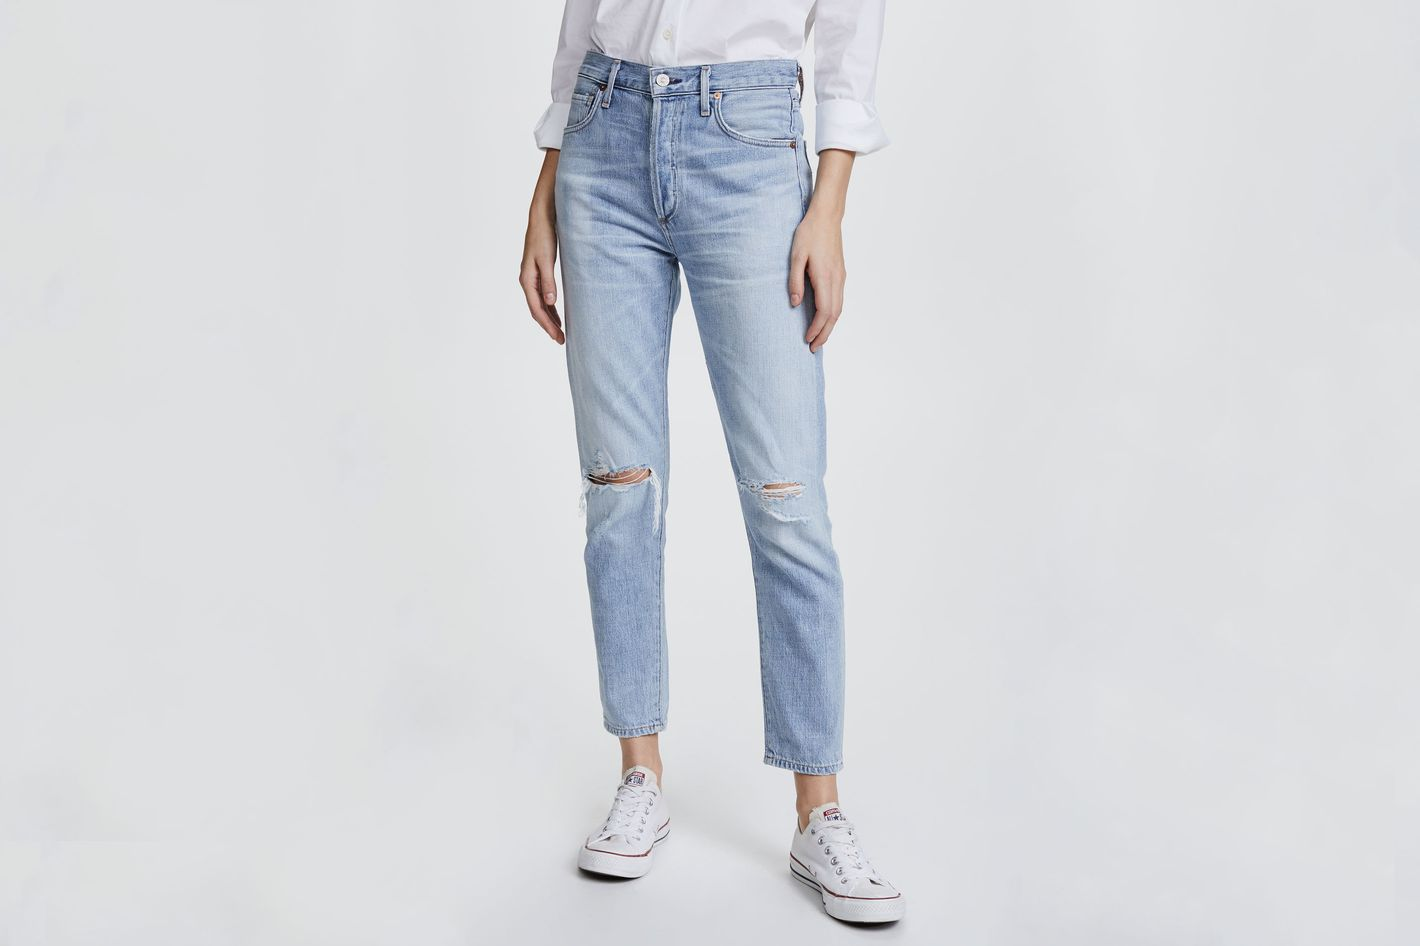 74b2b81c347 Citizens of Humanity Liya High Rise Classic Fit Jeans